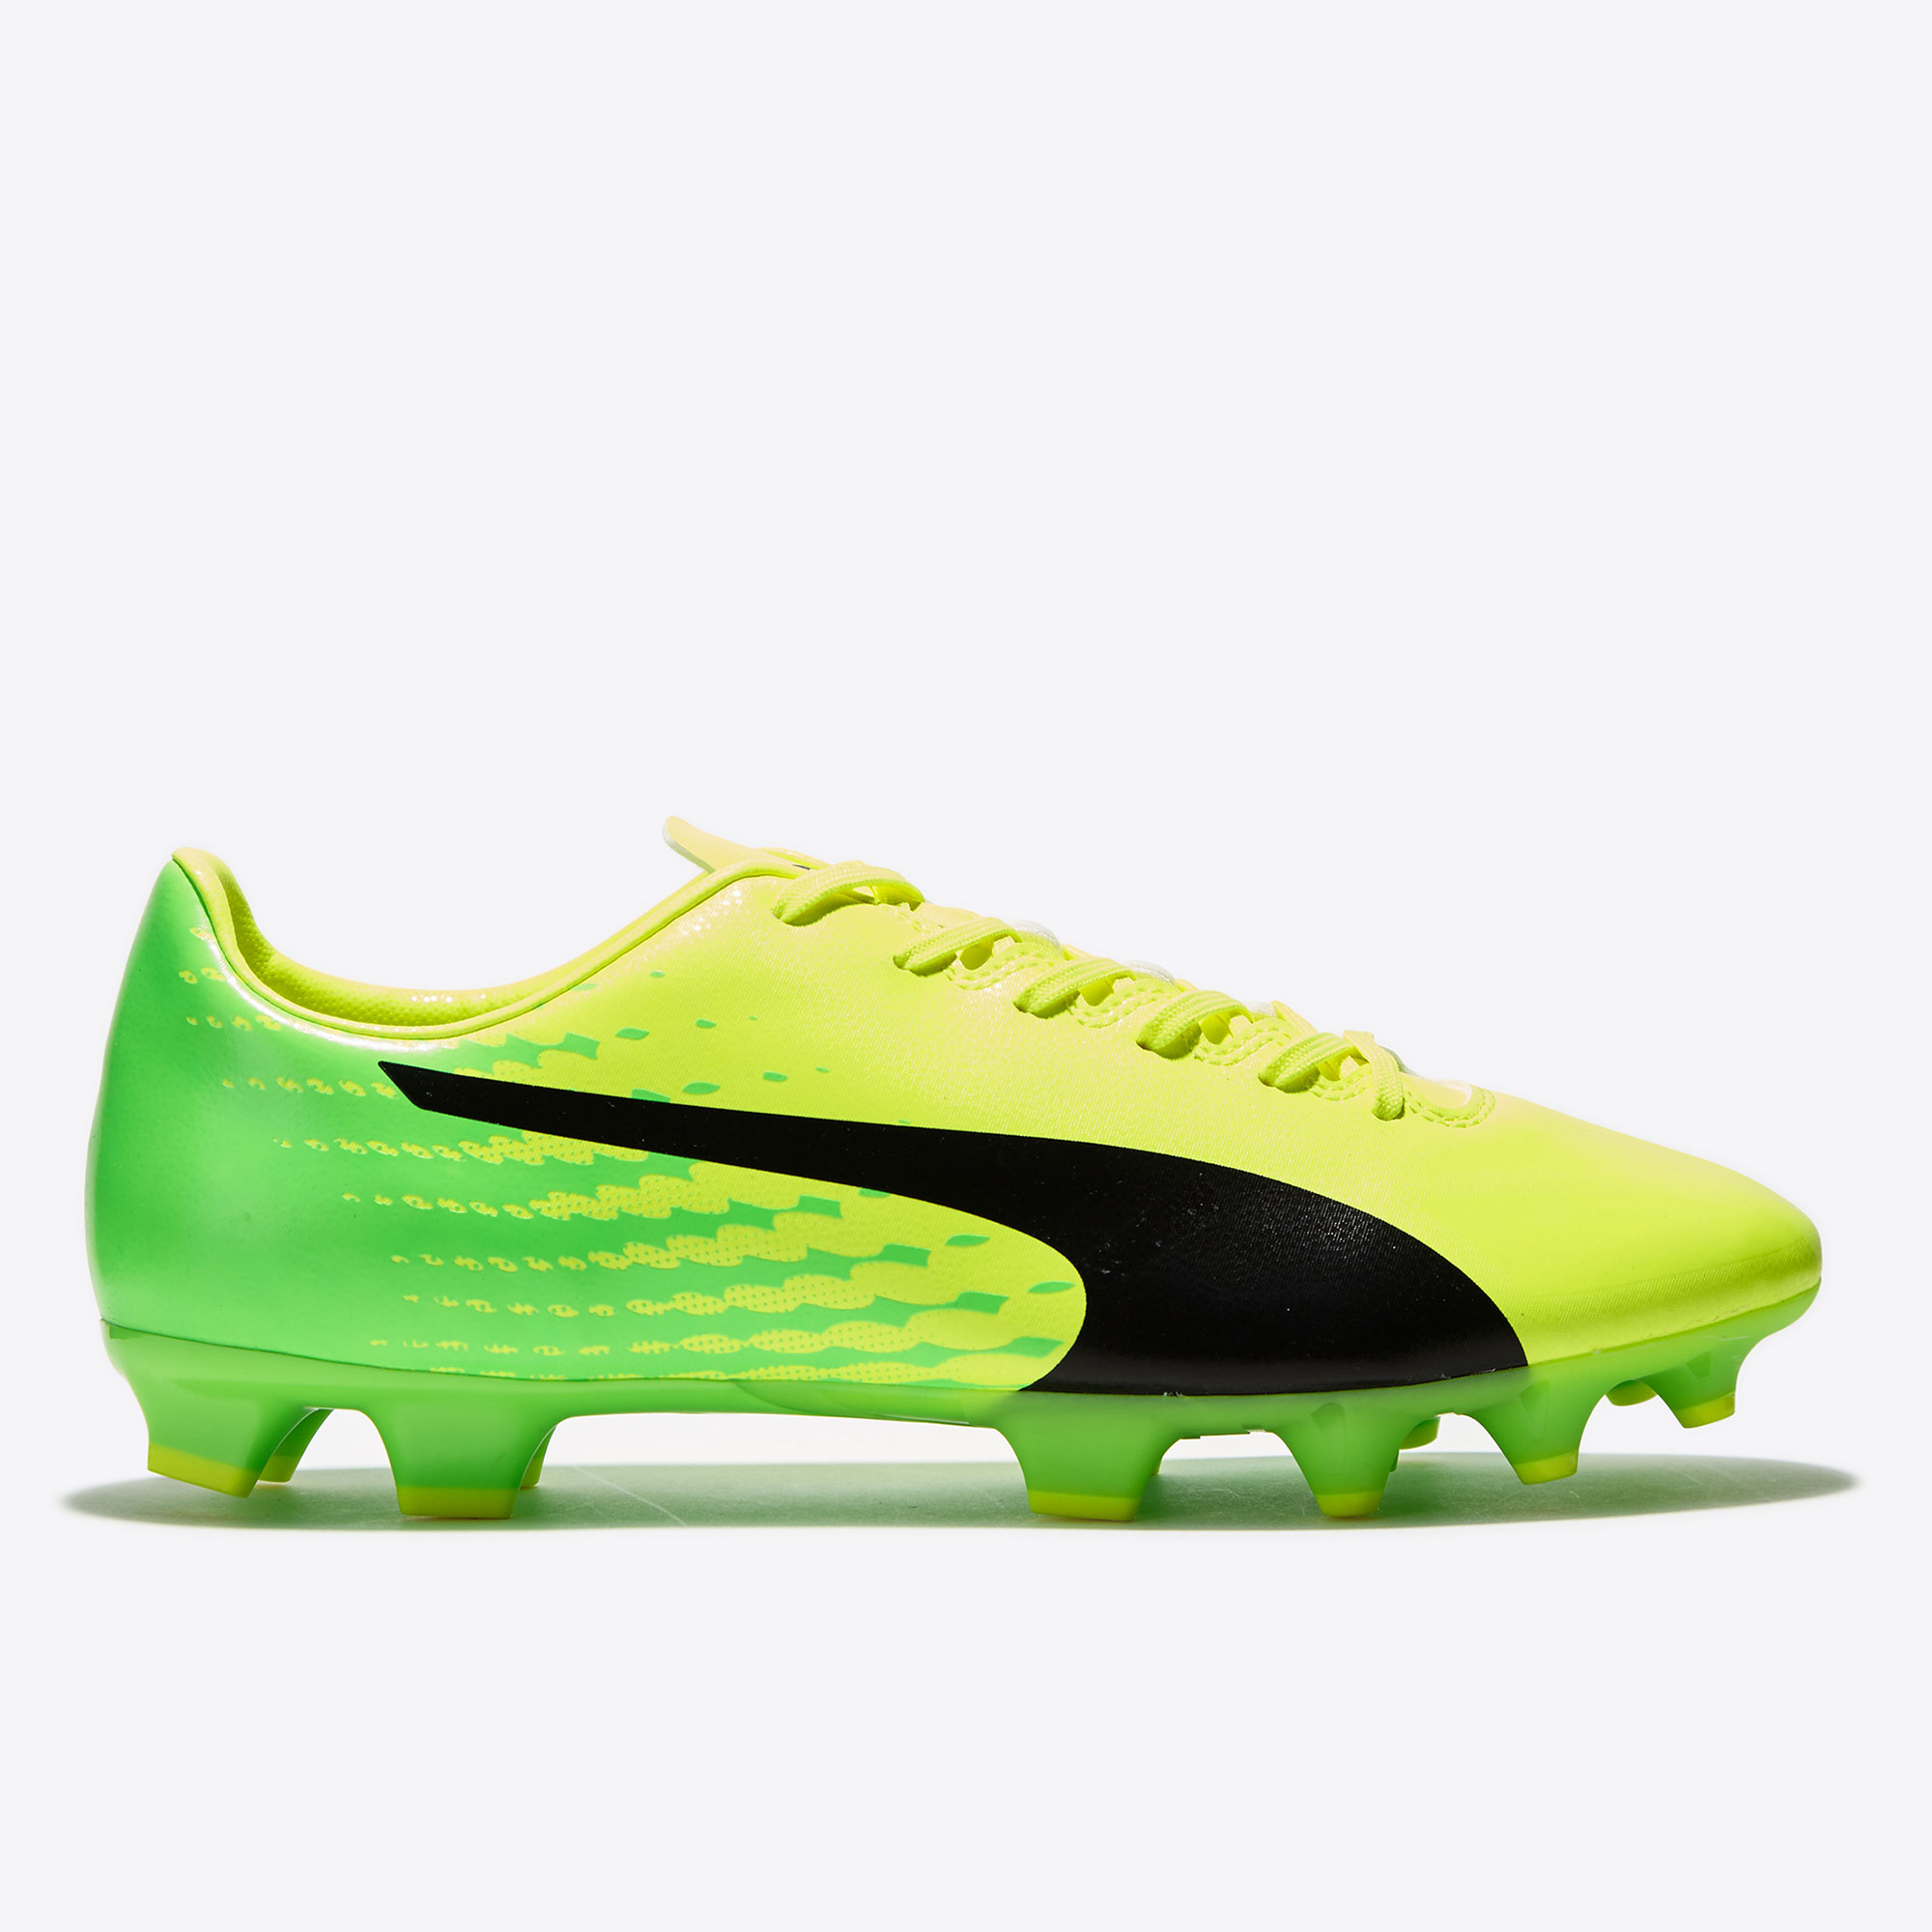 Puma evoSPEED 17.4 FG Safety Yellow/Black/Gr